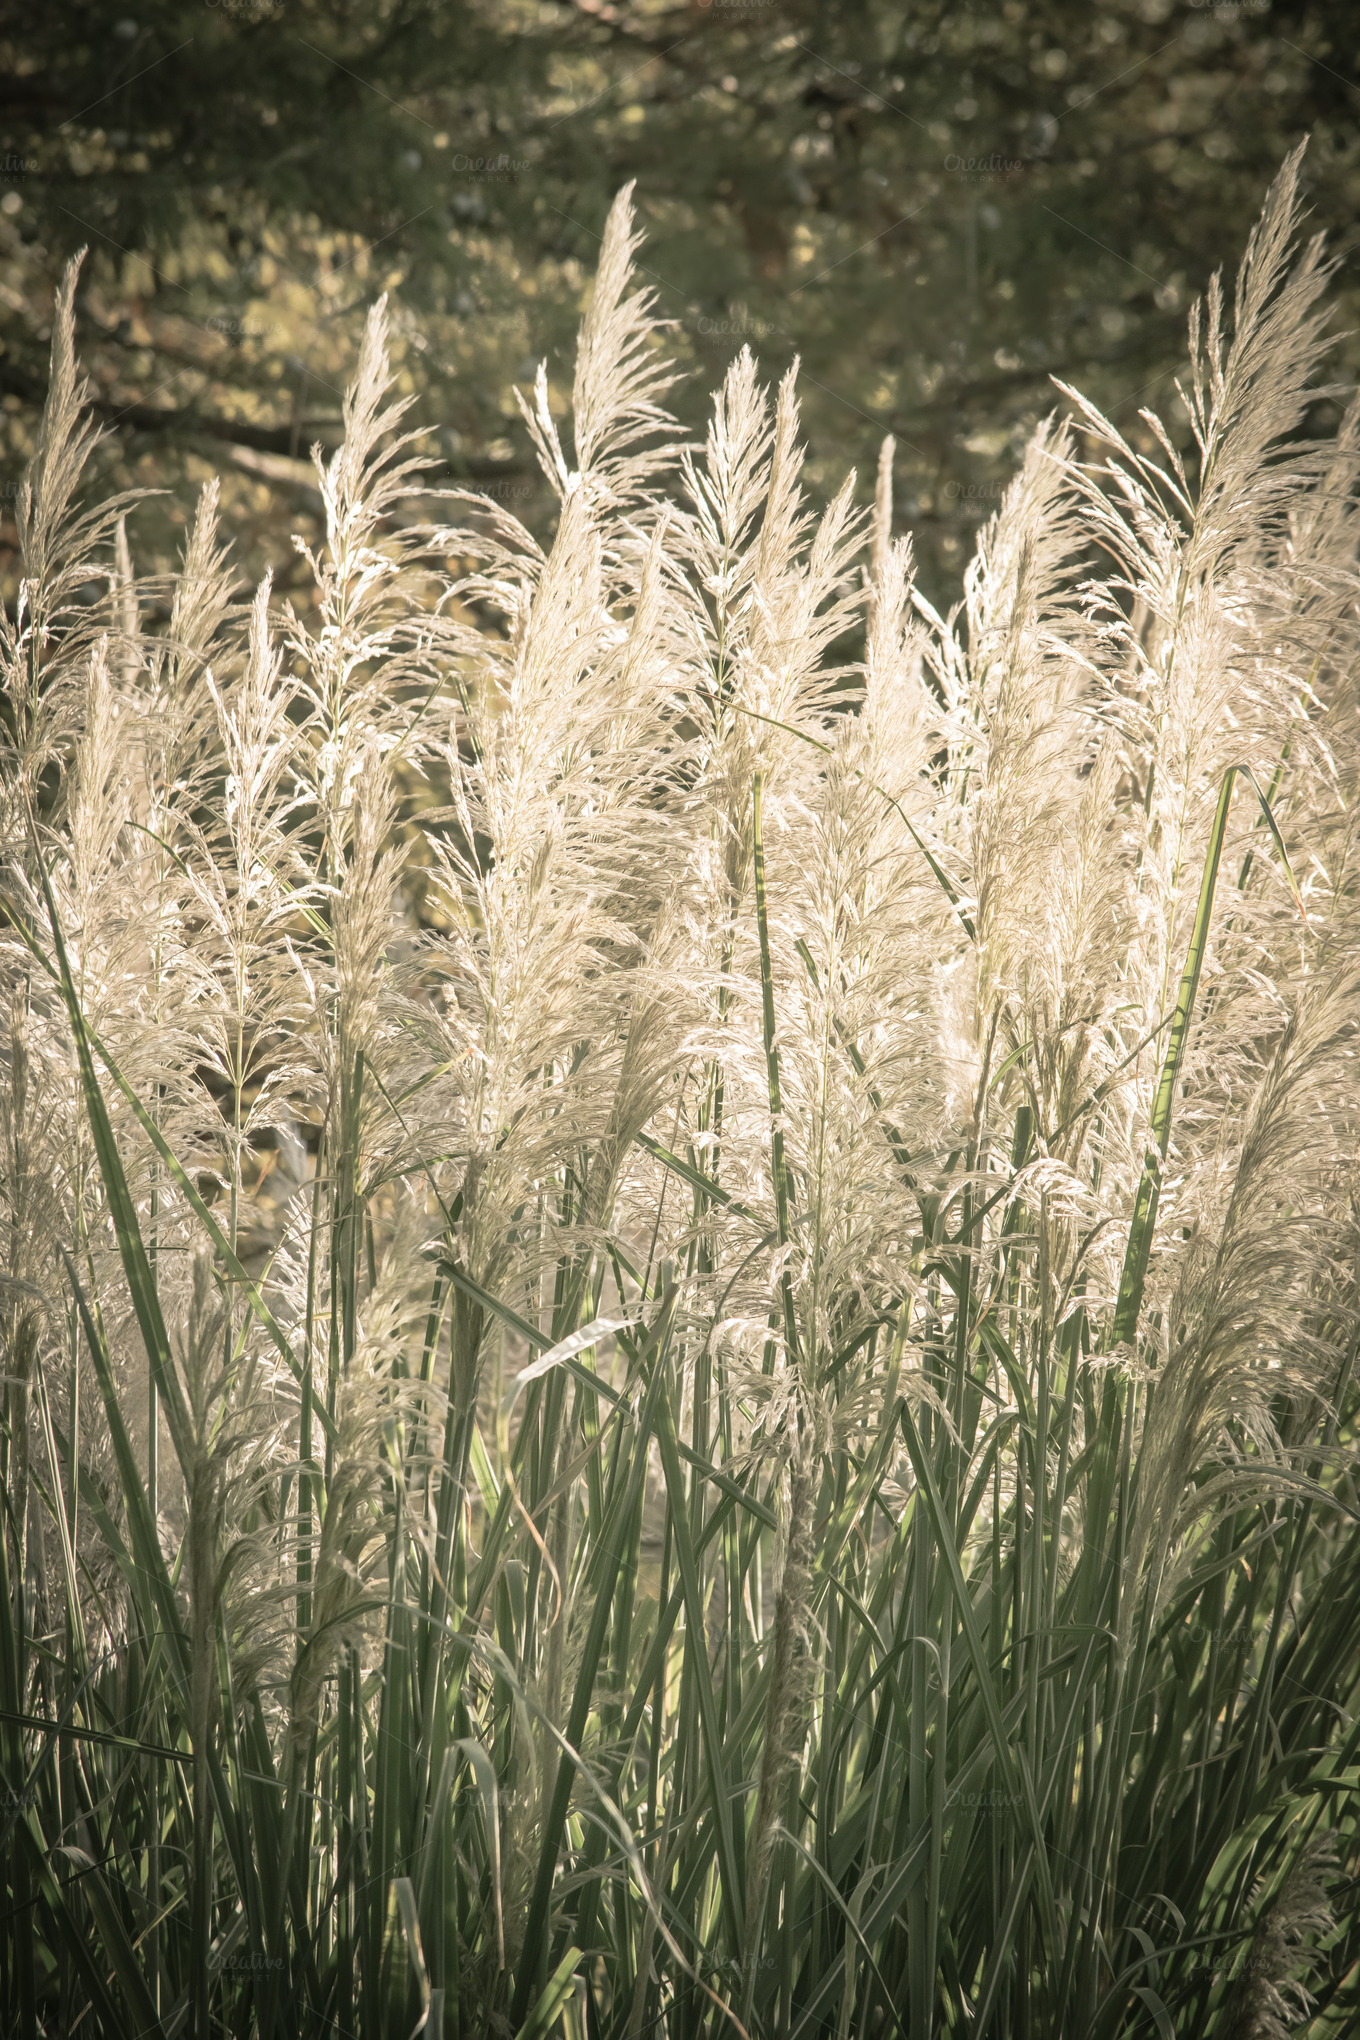 Tall ornamental grass nature photos on creative market for Very tall ornamental grasses